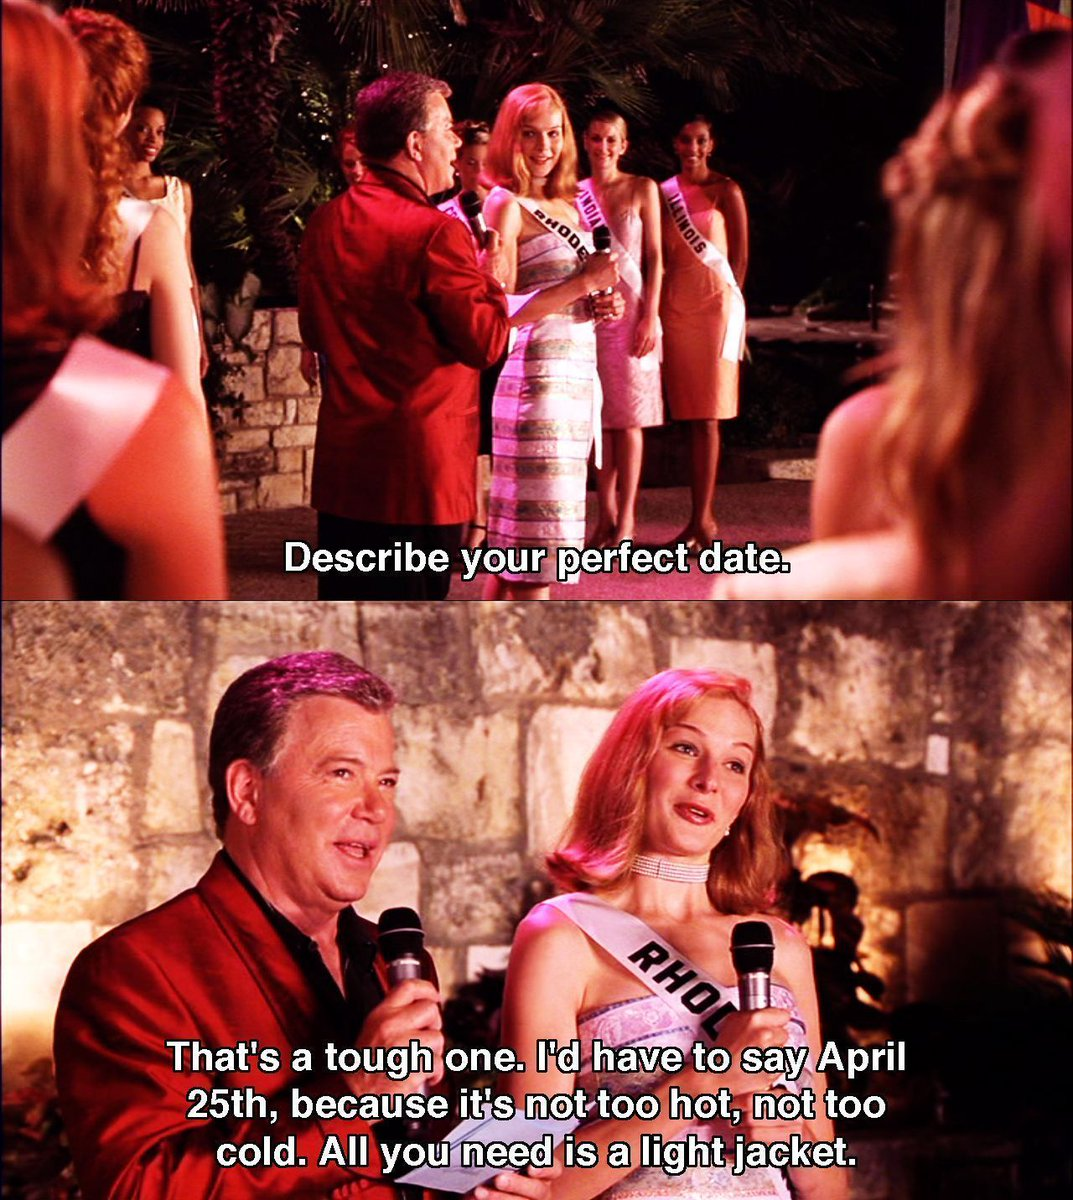 April 25th. The perfect date.  @WilliamShatner https://t.co/31f8yuRFur